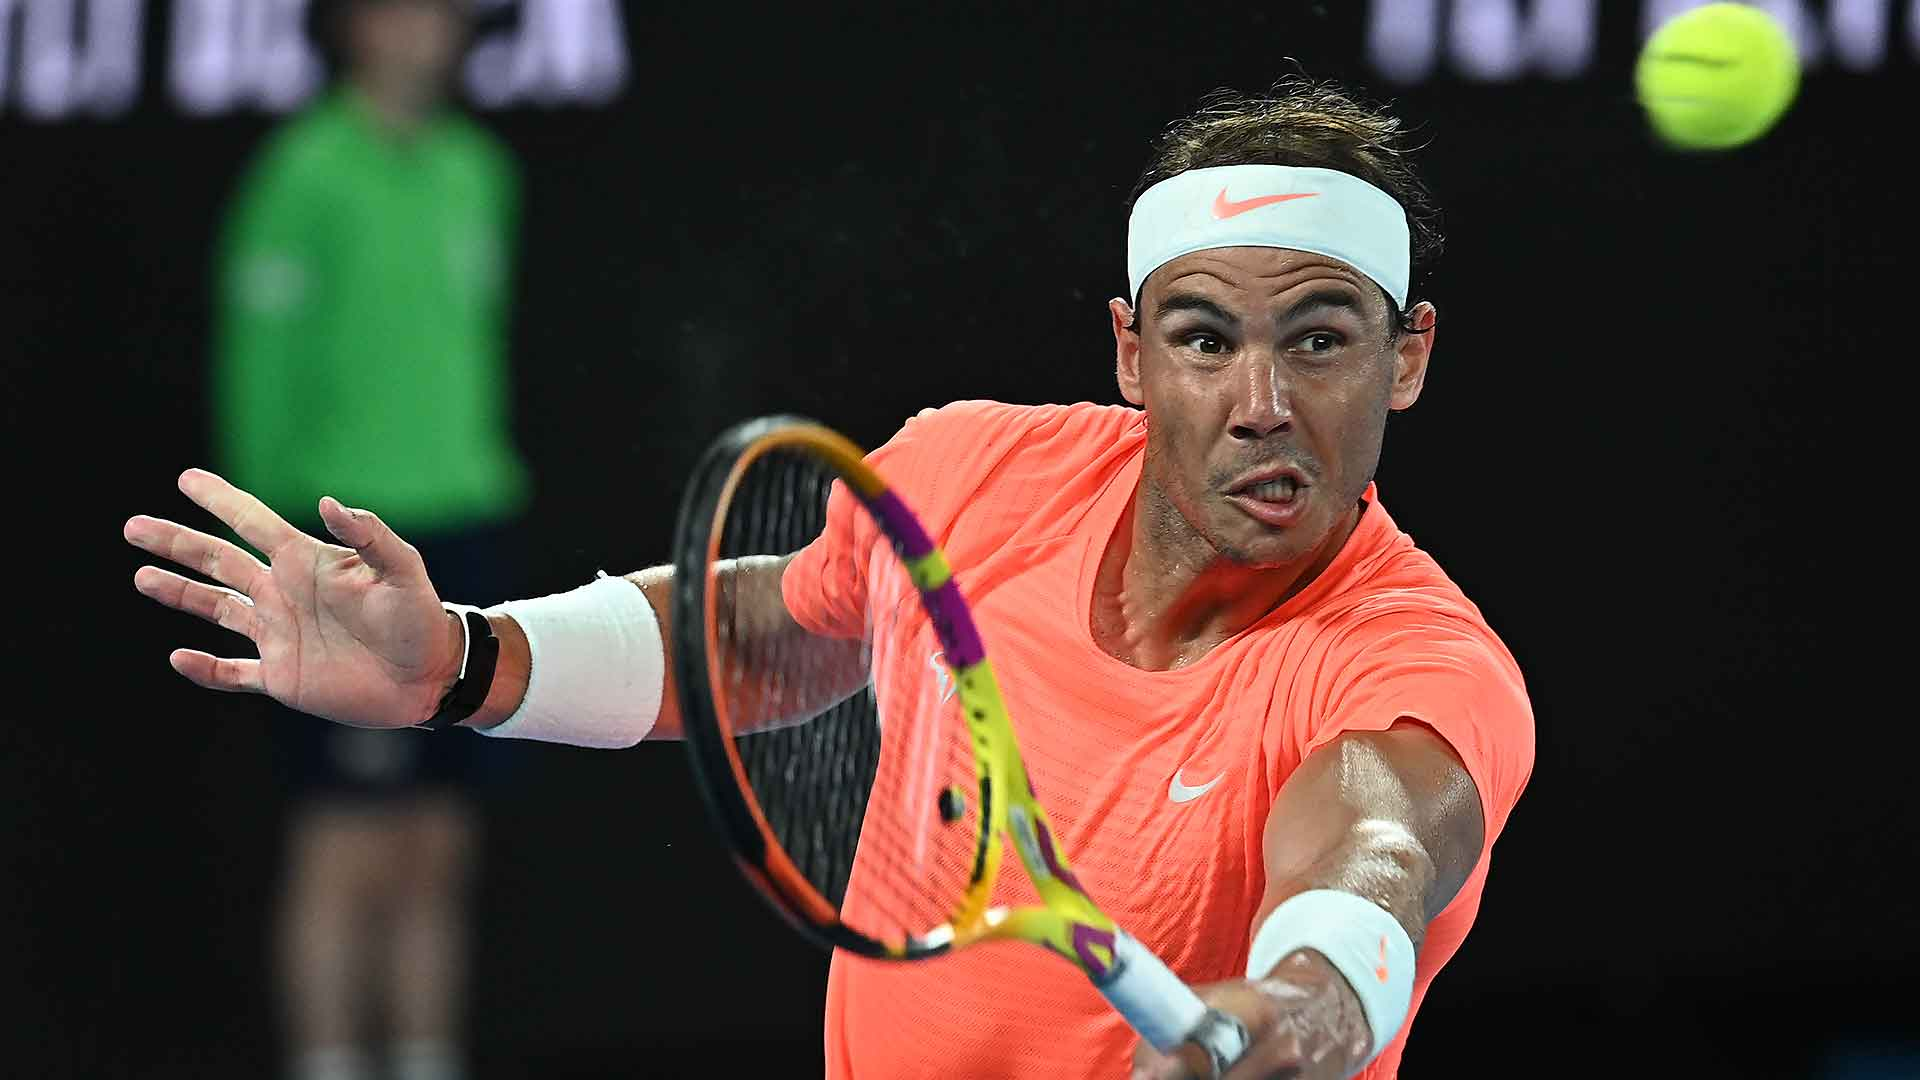 Rafael Nadal: 'I Stayed Positive All Match, Today It Was Not Enough' - 2021 Australian Open Match Reaction - ATP Tour